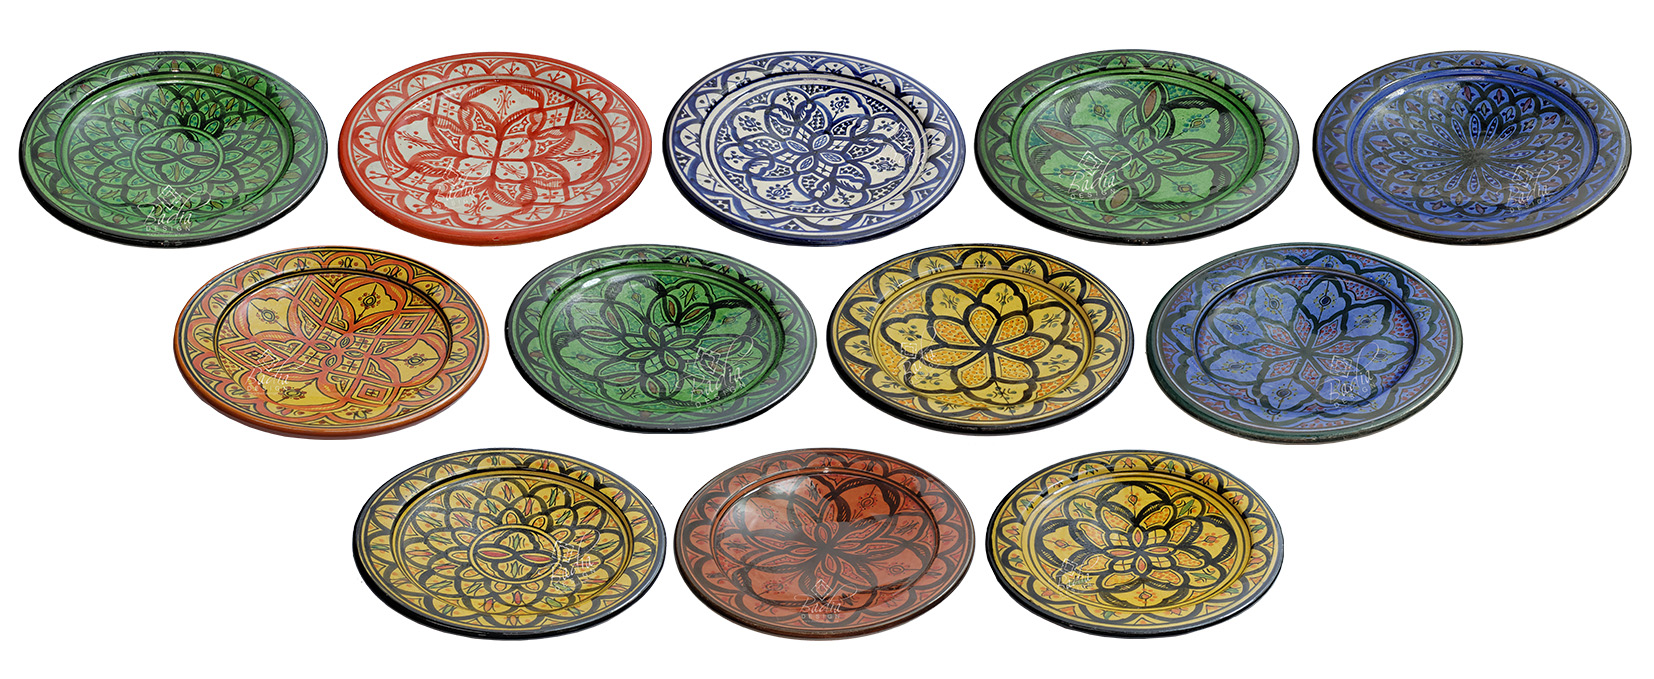 moroccan-large-hand-painted-ceramic-plates-cer-p041.jpg